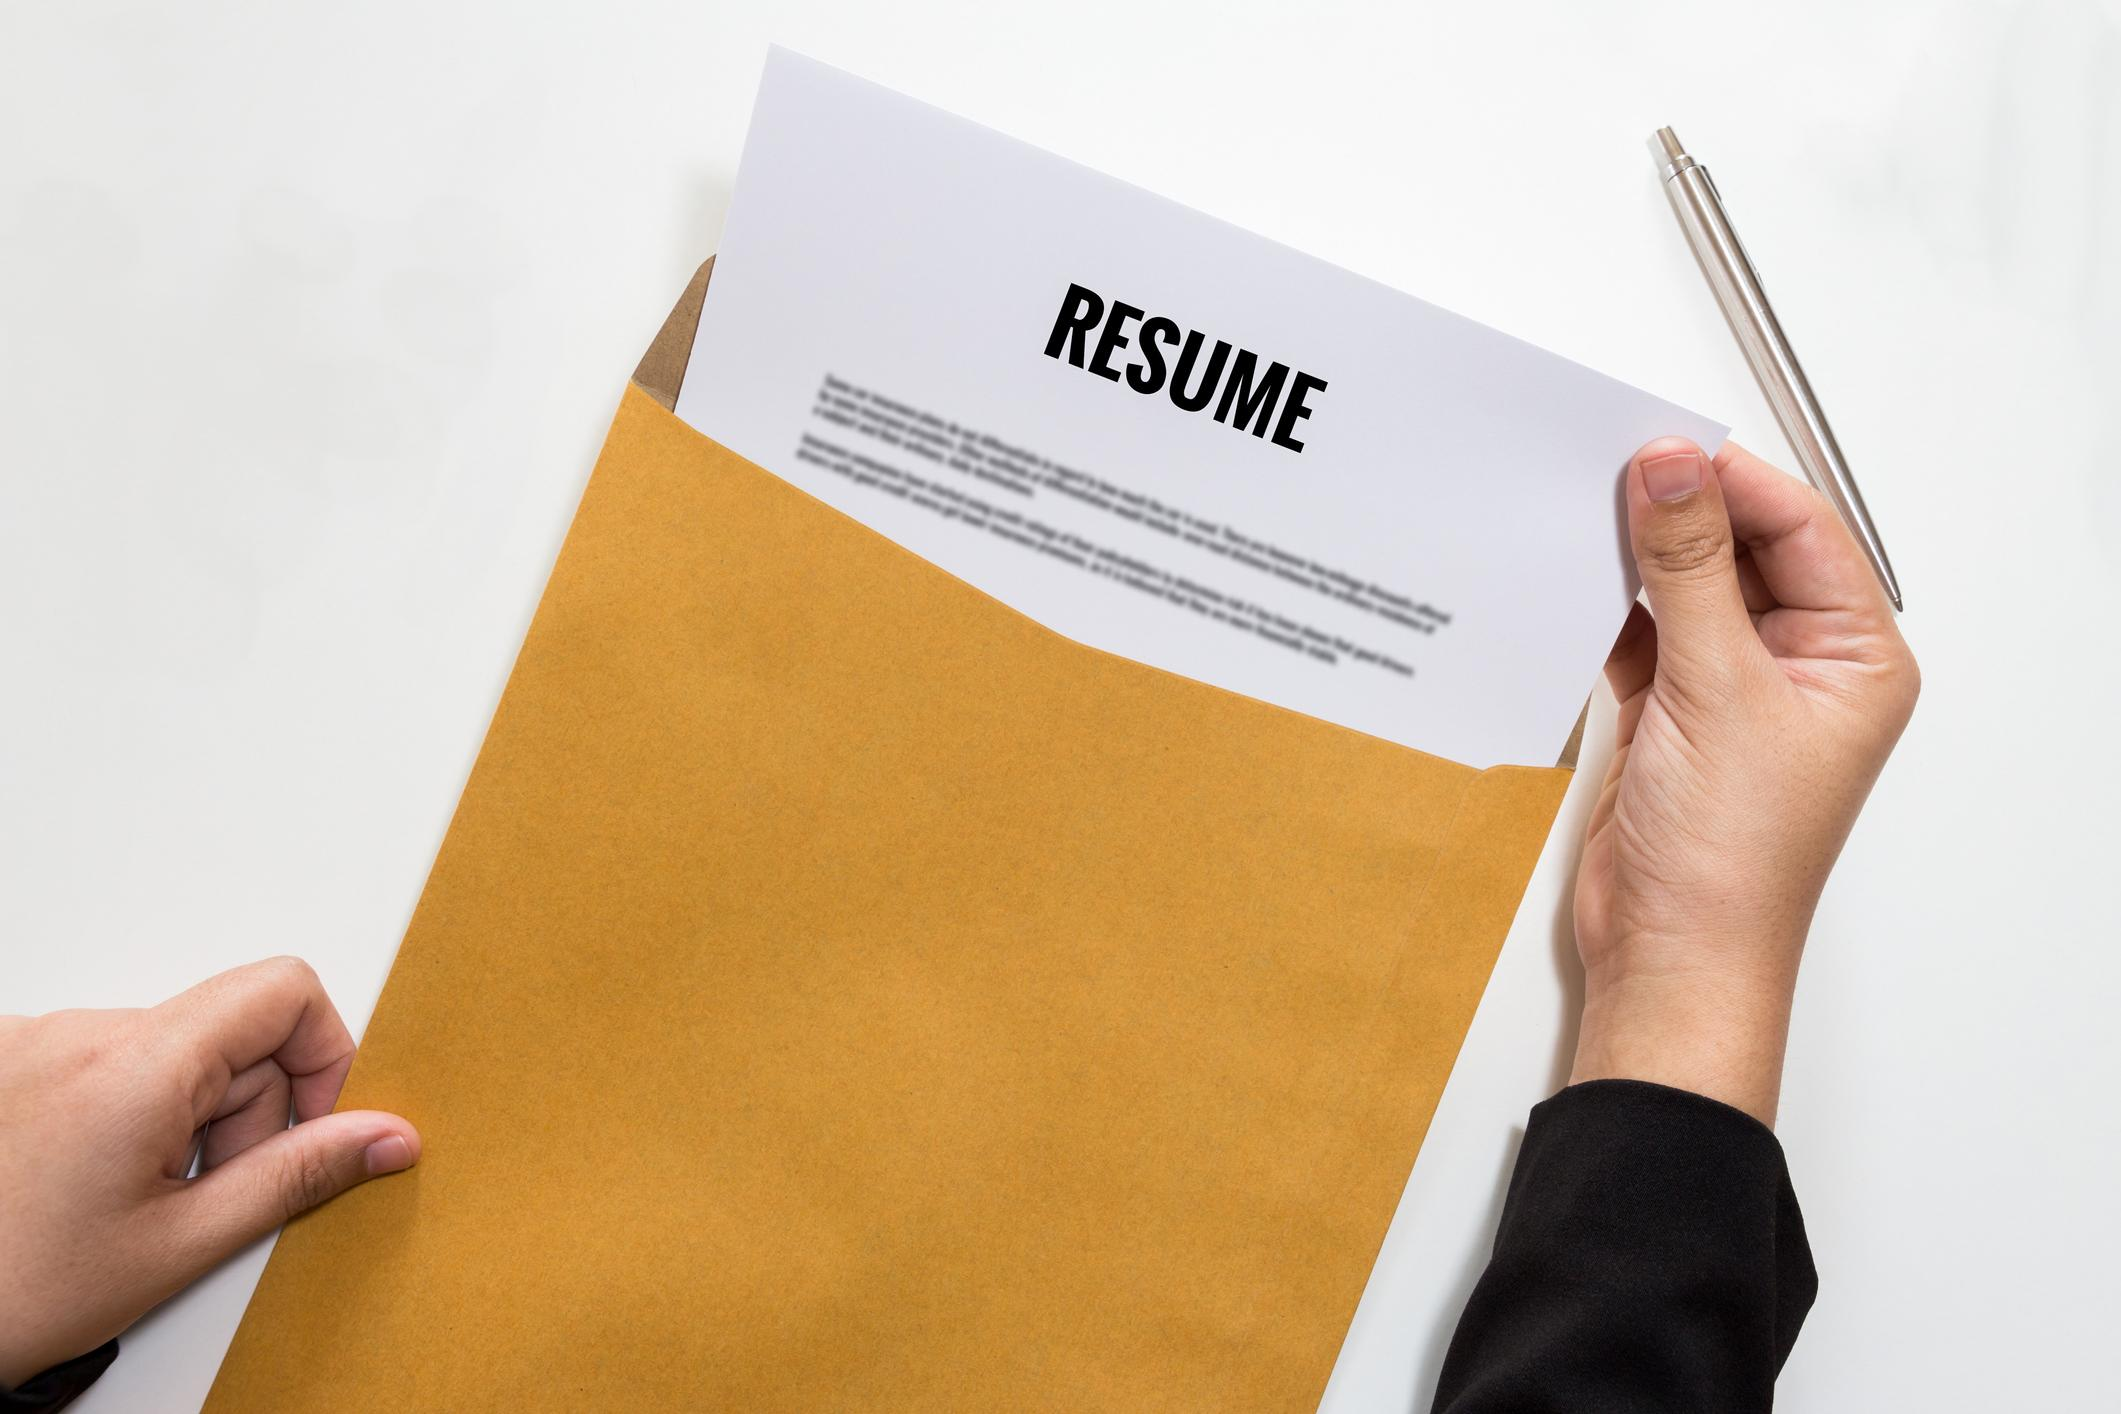 5 resume mistakes to avoid and what to do instead